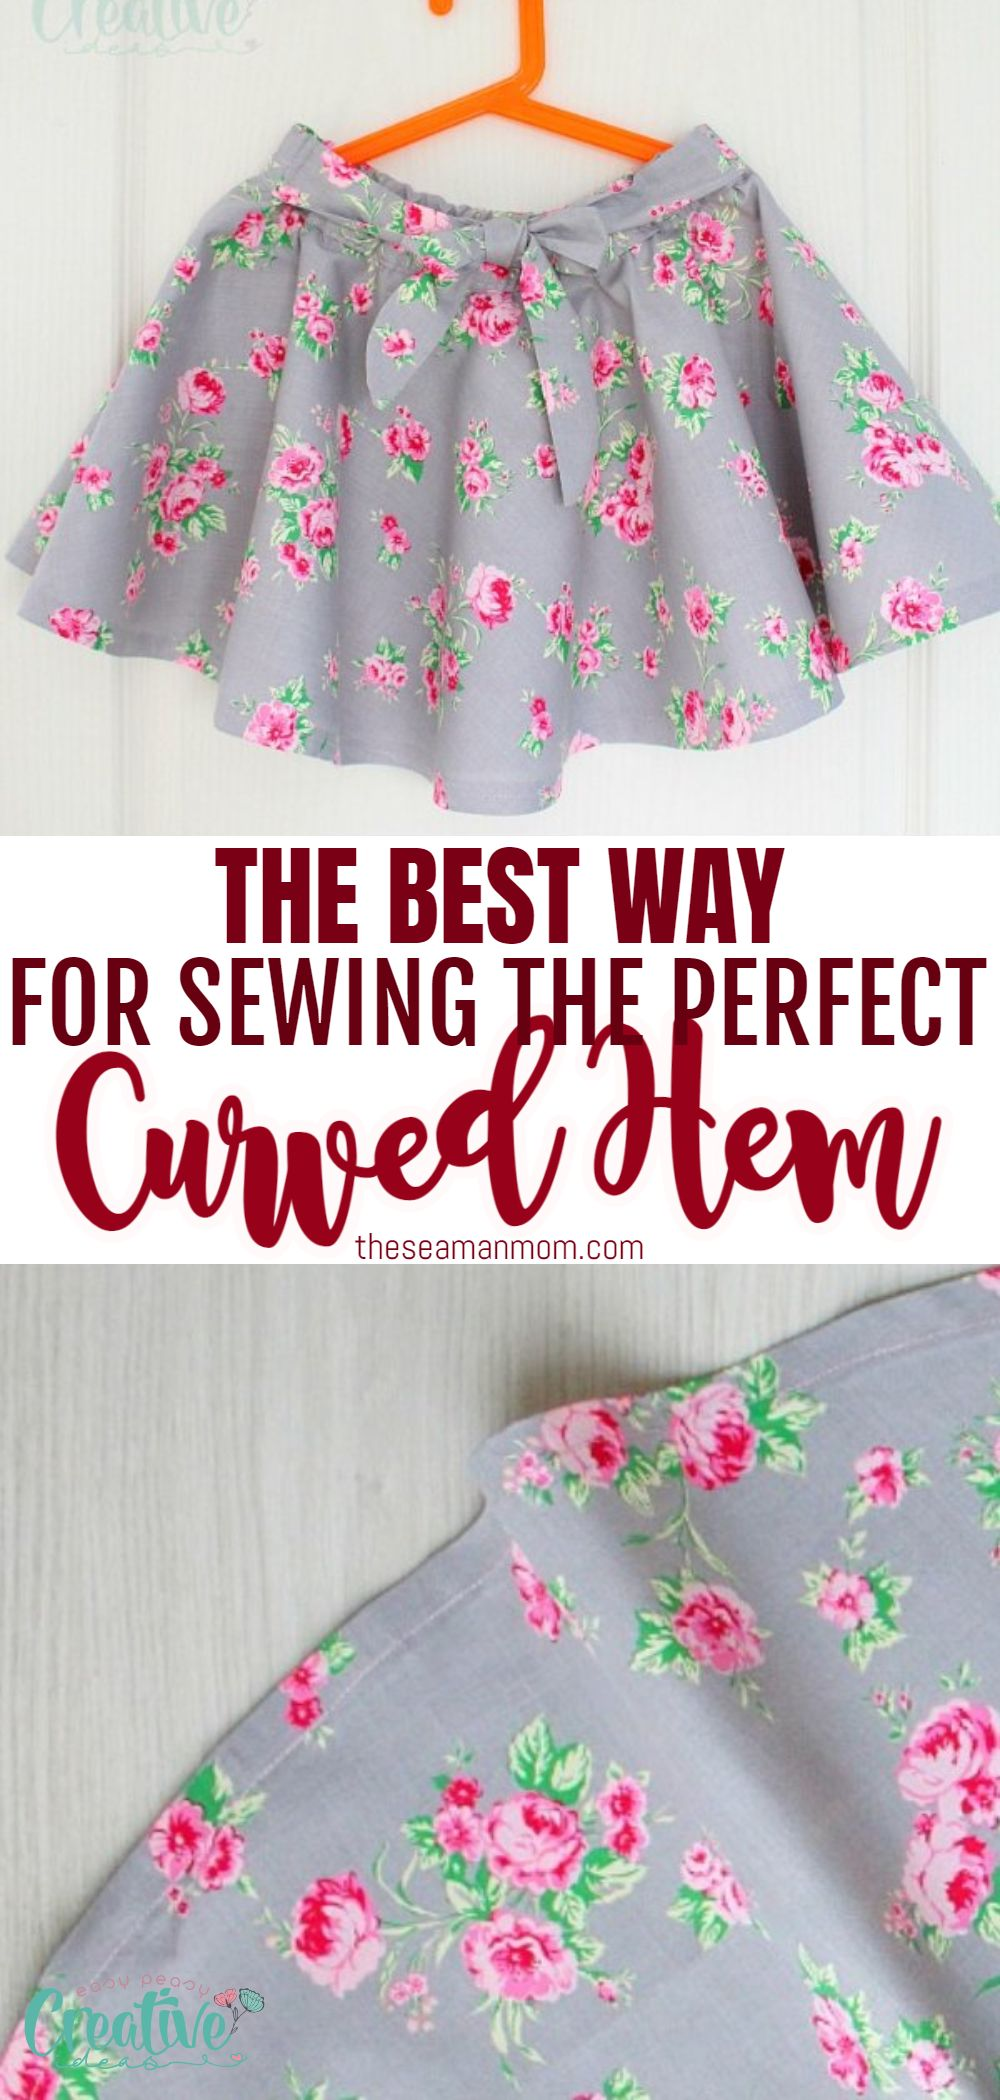 When a straight hem just won't do, a curved hem can turn a plain skirt or a dress into a work of art! Learning how to make a curved hem comes in very handy, especially when making dresses or circle skirts. Here is an easy method that will give you a smooth, neat finish on any round hem. via @petroneagu